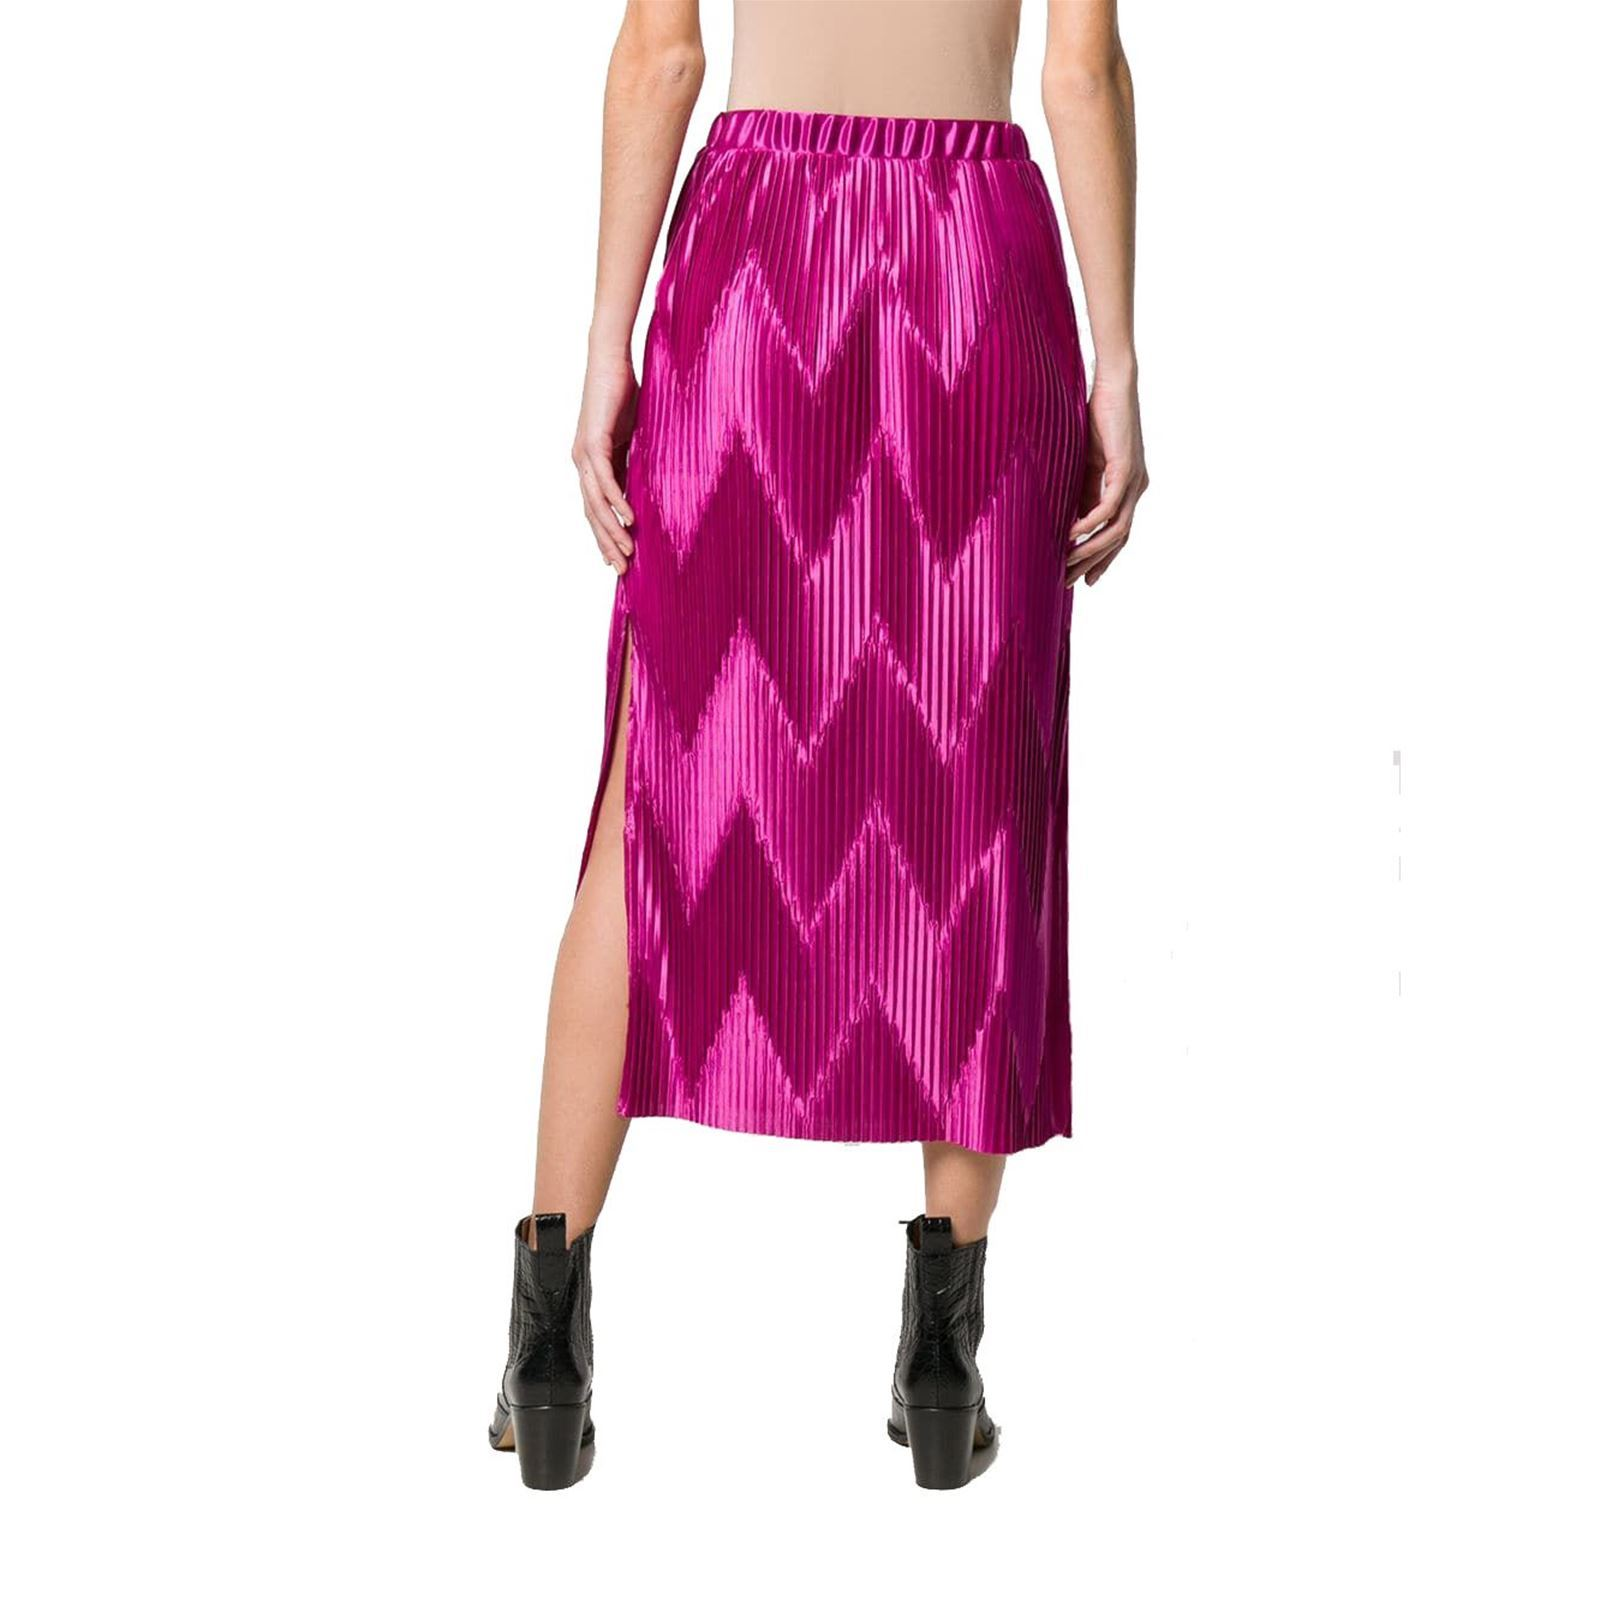 Femme Givenchy V Givenchy DroiteFuchsia Jupe Jupe V Femme DroiteFuchsia sdQxCthr